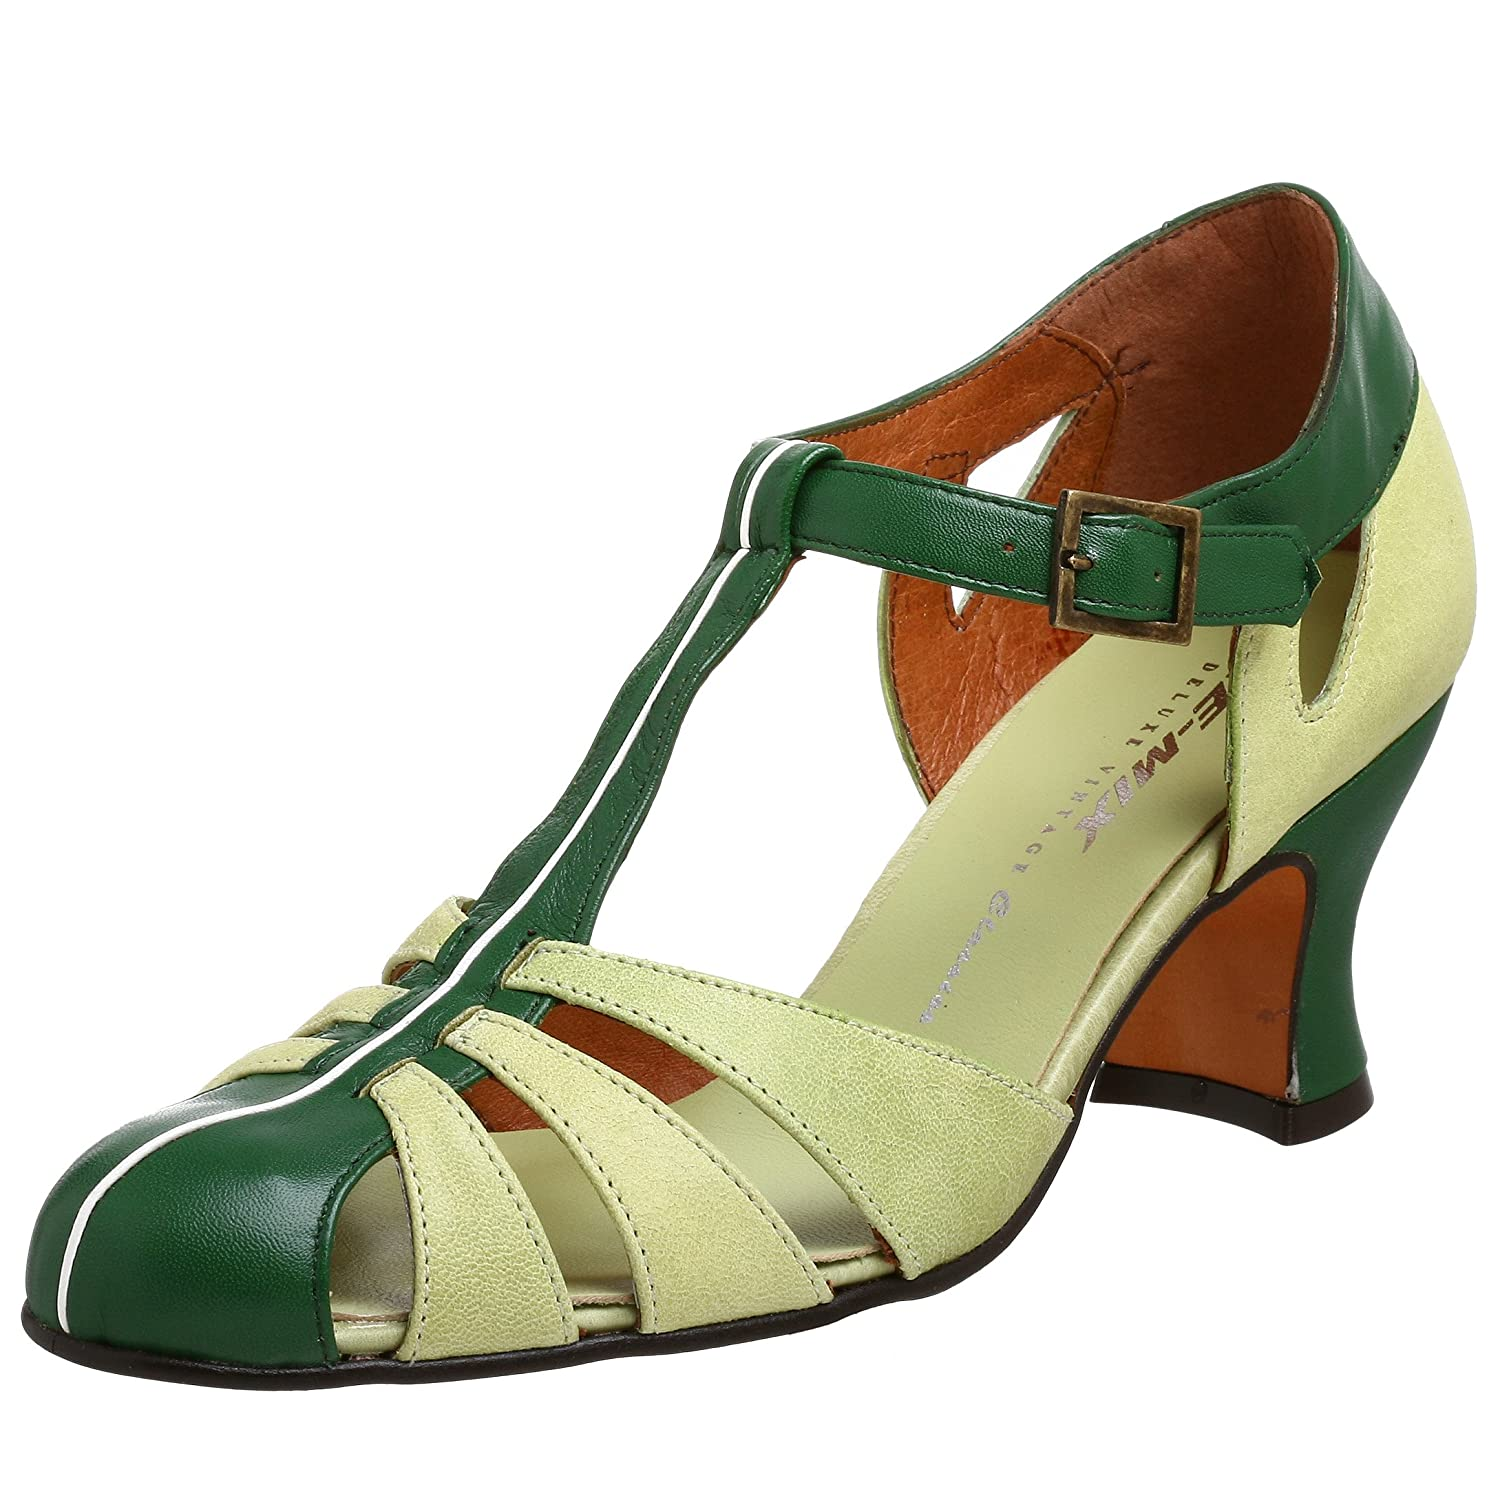 Re-Mix Vintage Balboa Sandal - Free Overnight Shipping & Return Shipping: Endless.com :  t-strap retro heels sandals